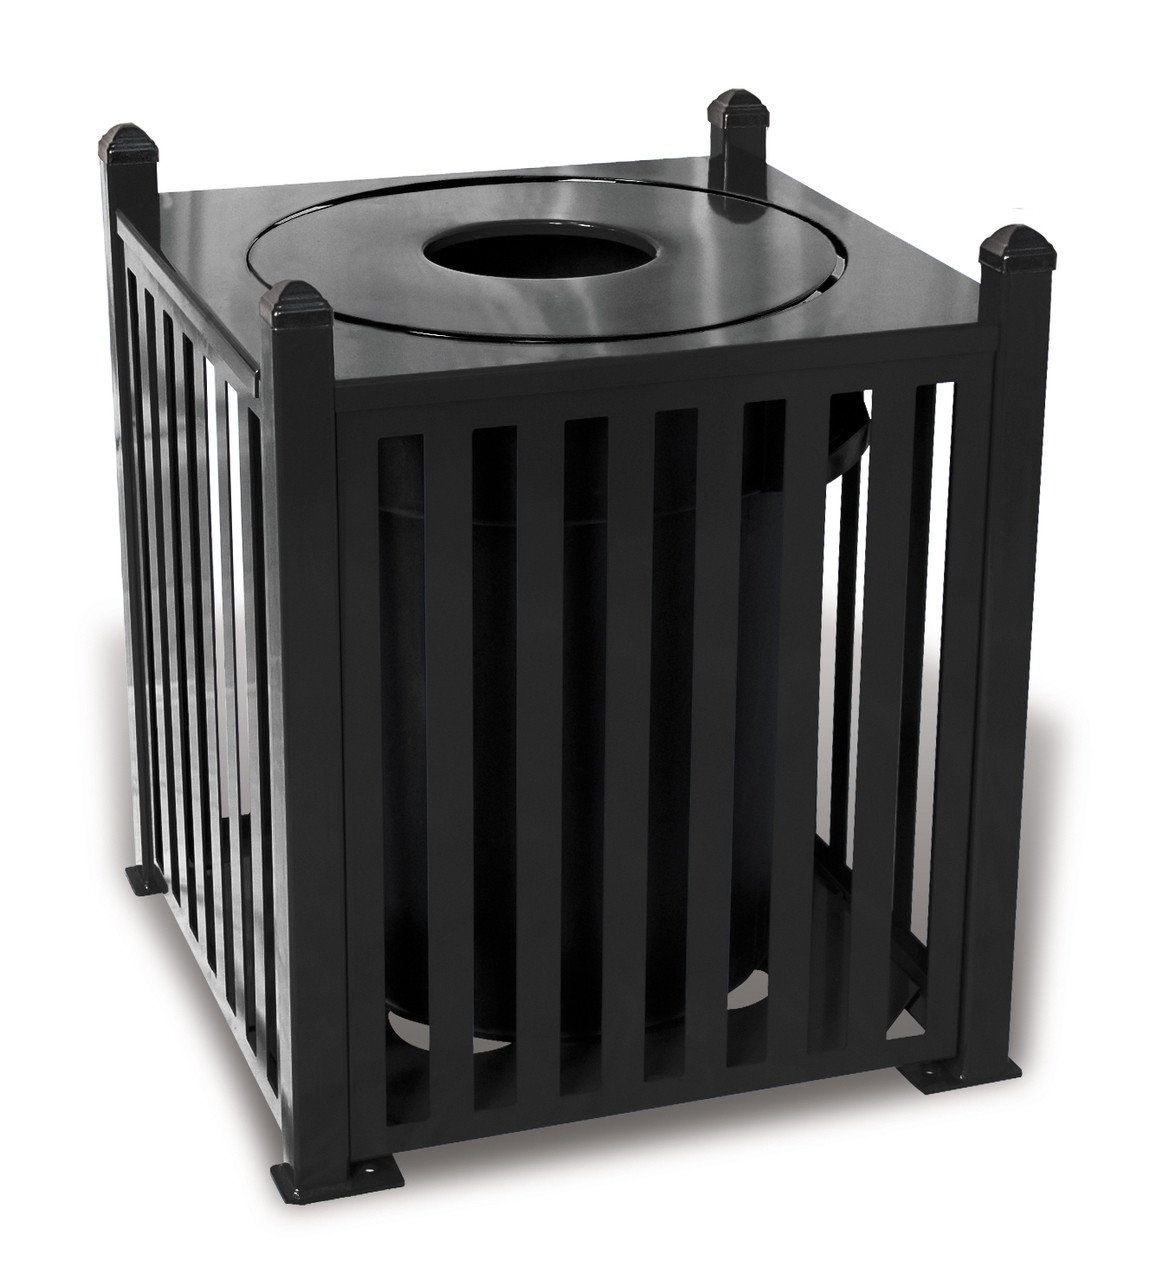 32 Gallon Ultra Site Savannah Outdoor Square Trash Container SV32 (8 Colors)